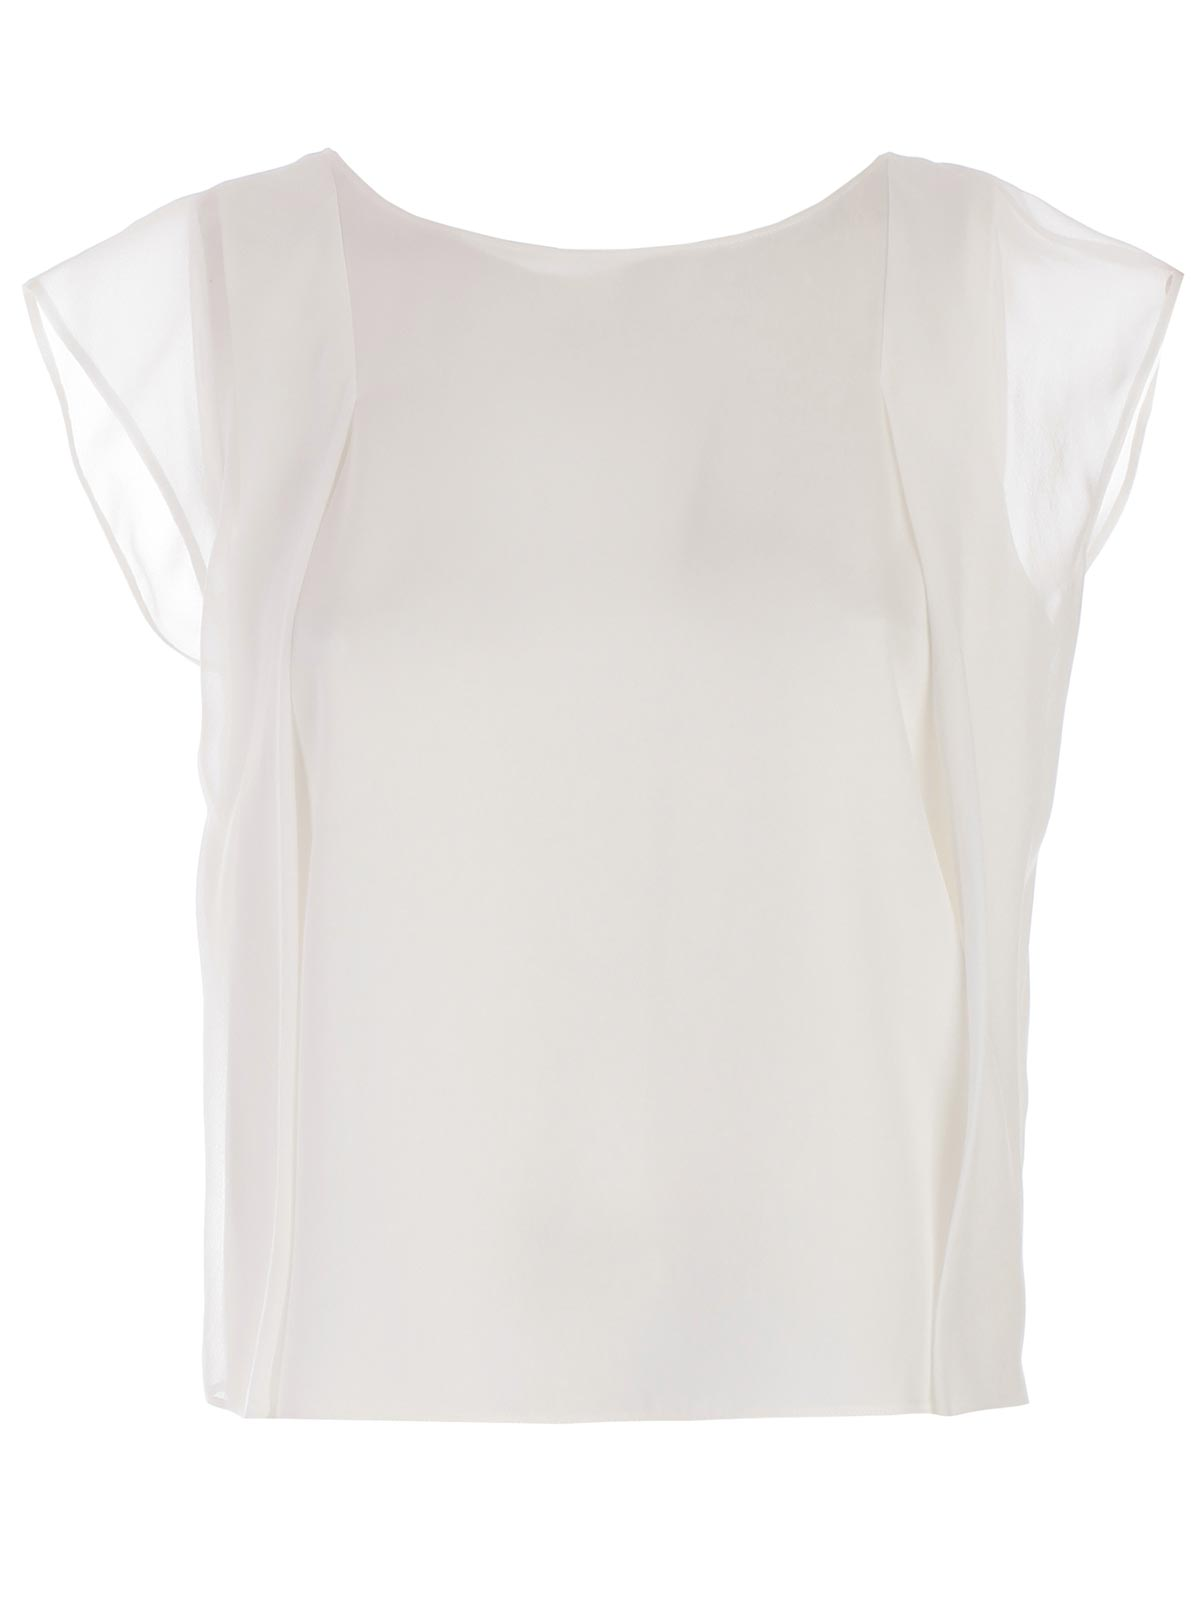 Picture of Emporio Armani Top